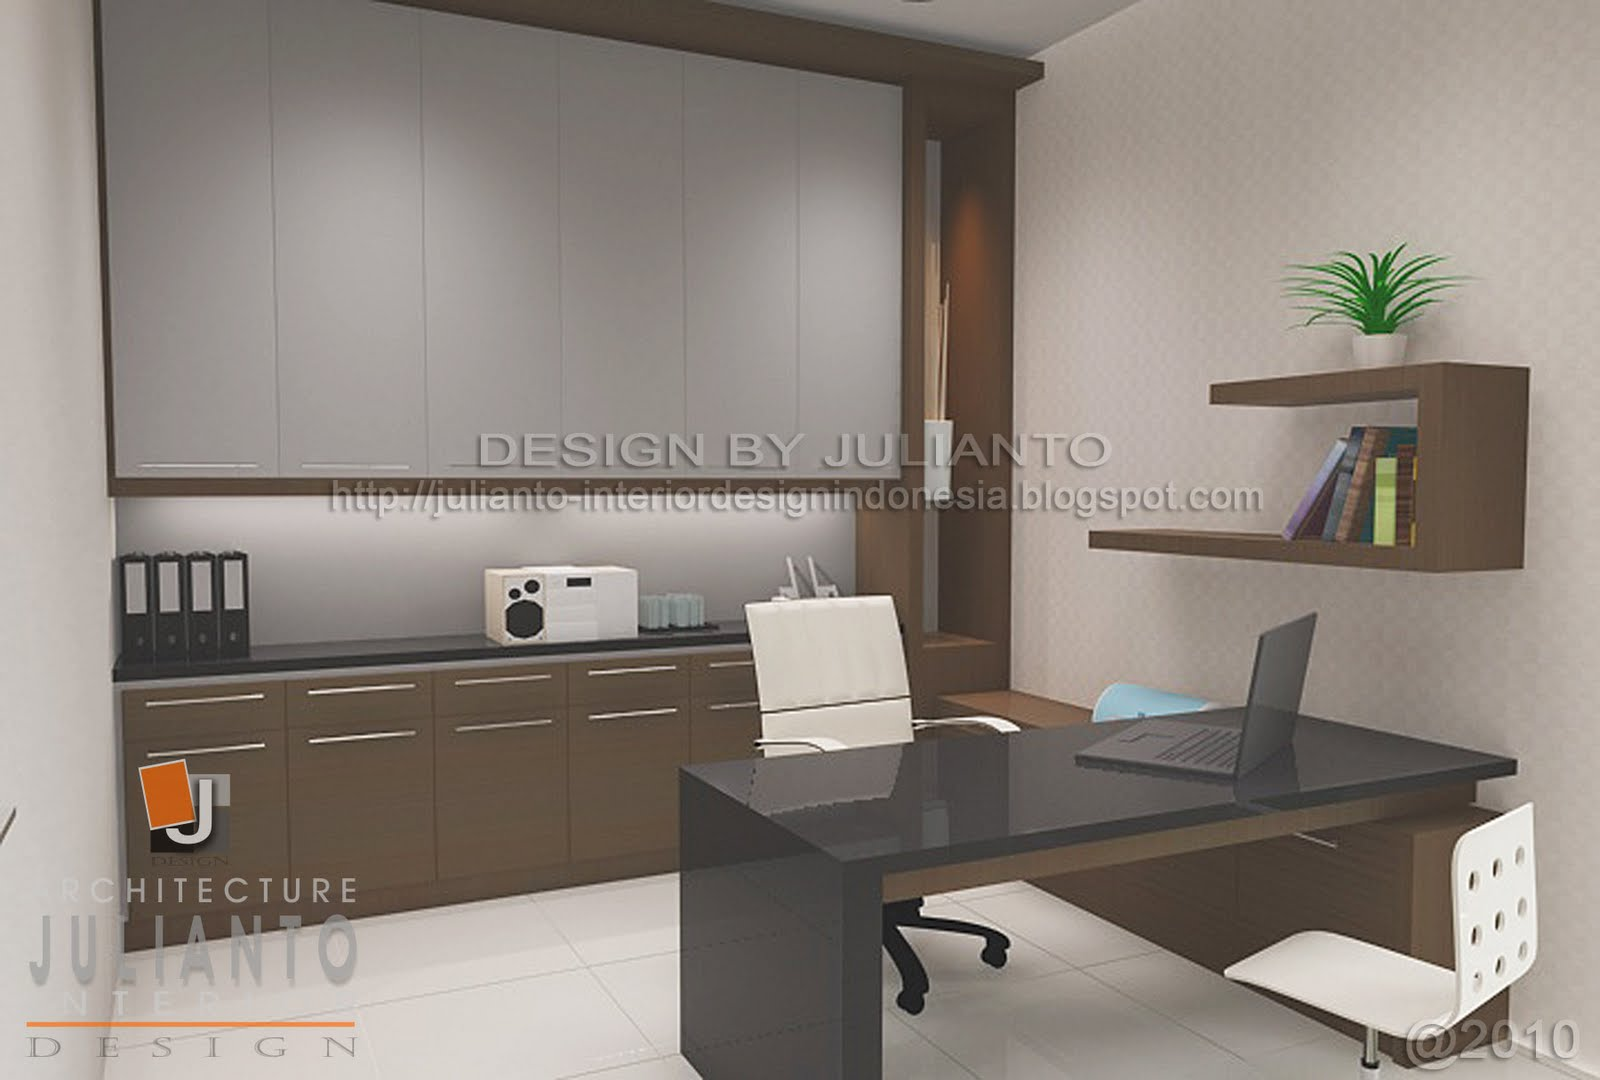 Interesting Personal Office Interior Design - Home Design #427